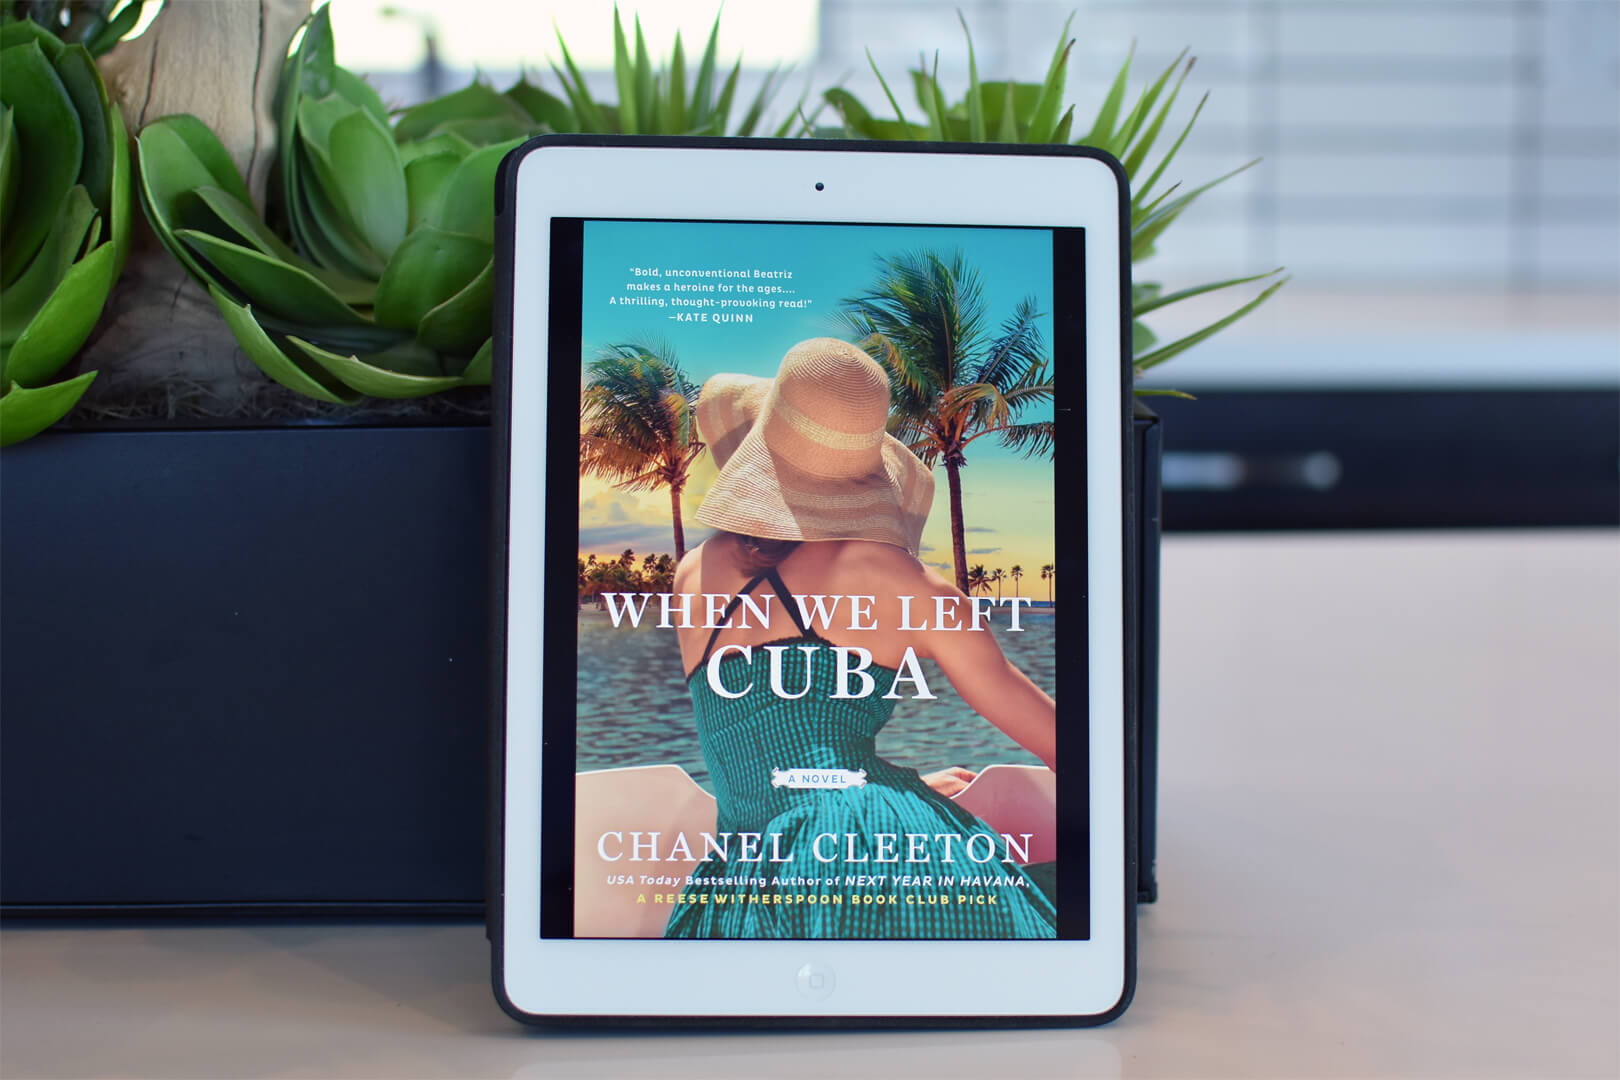 When We Left Cuba Preview - Book Club Chat